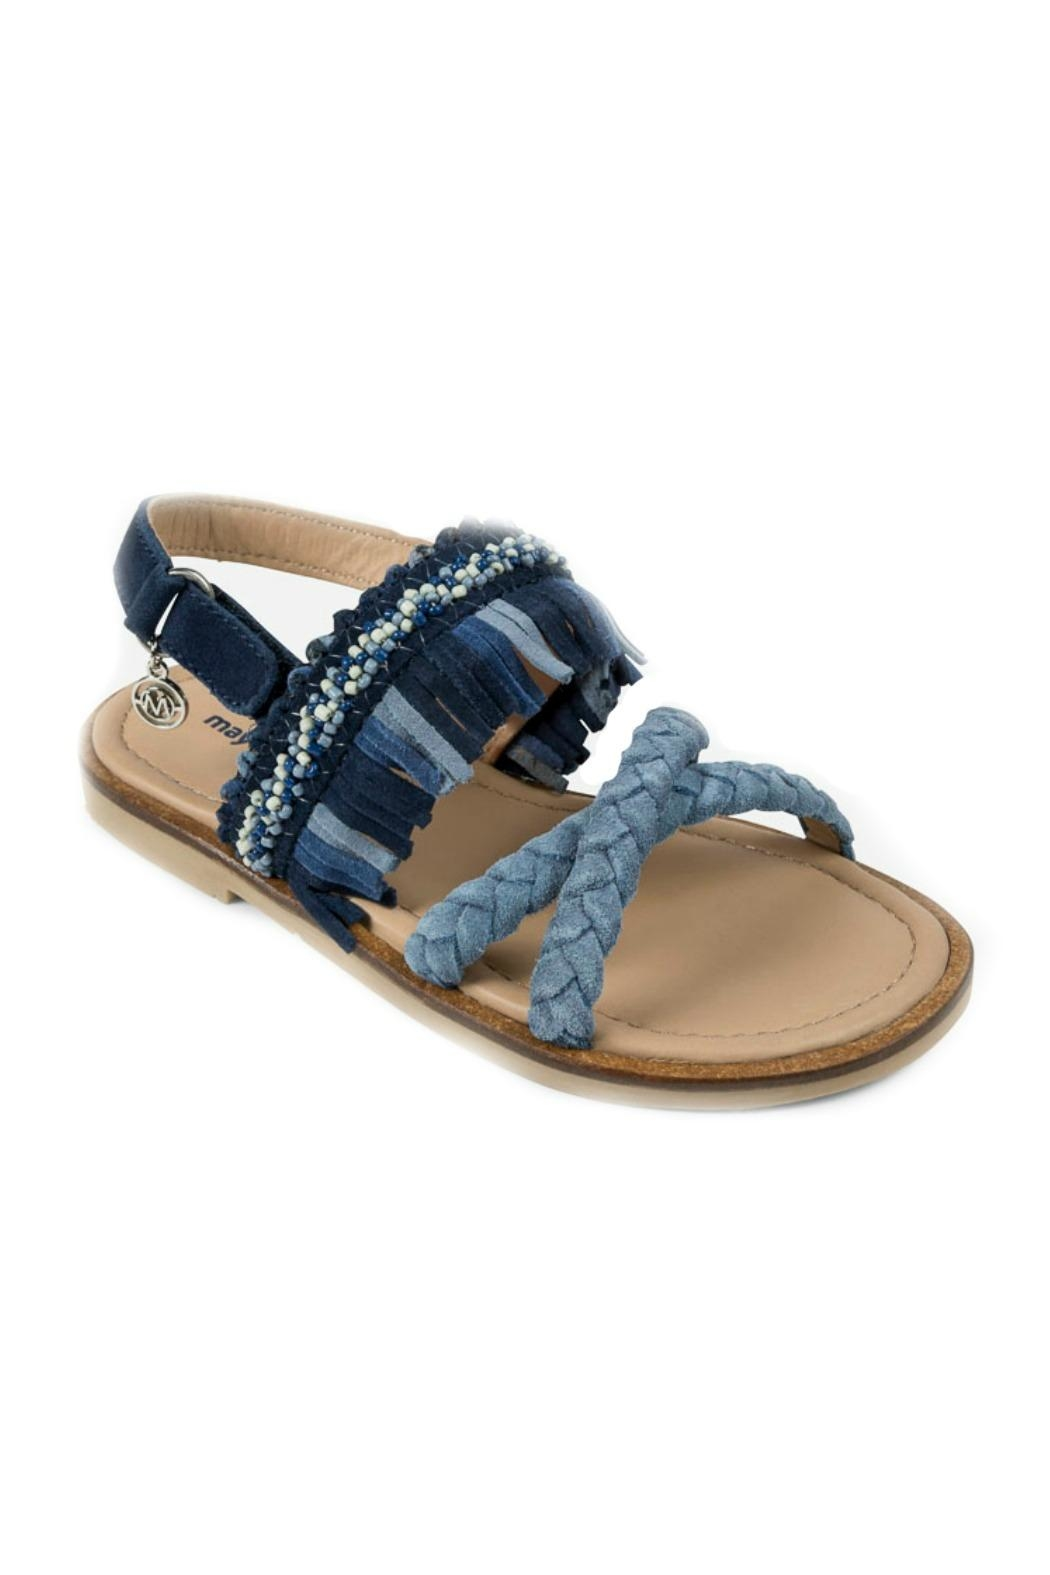 Mayoral Braided Leather-Fringed Sandals - Front Full Image